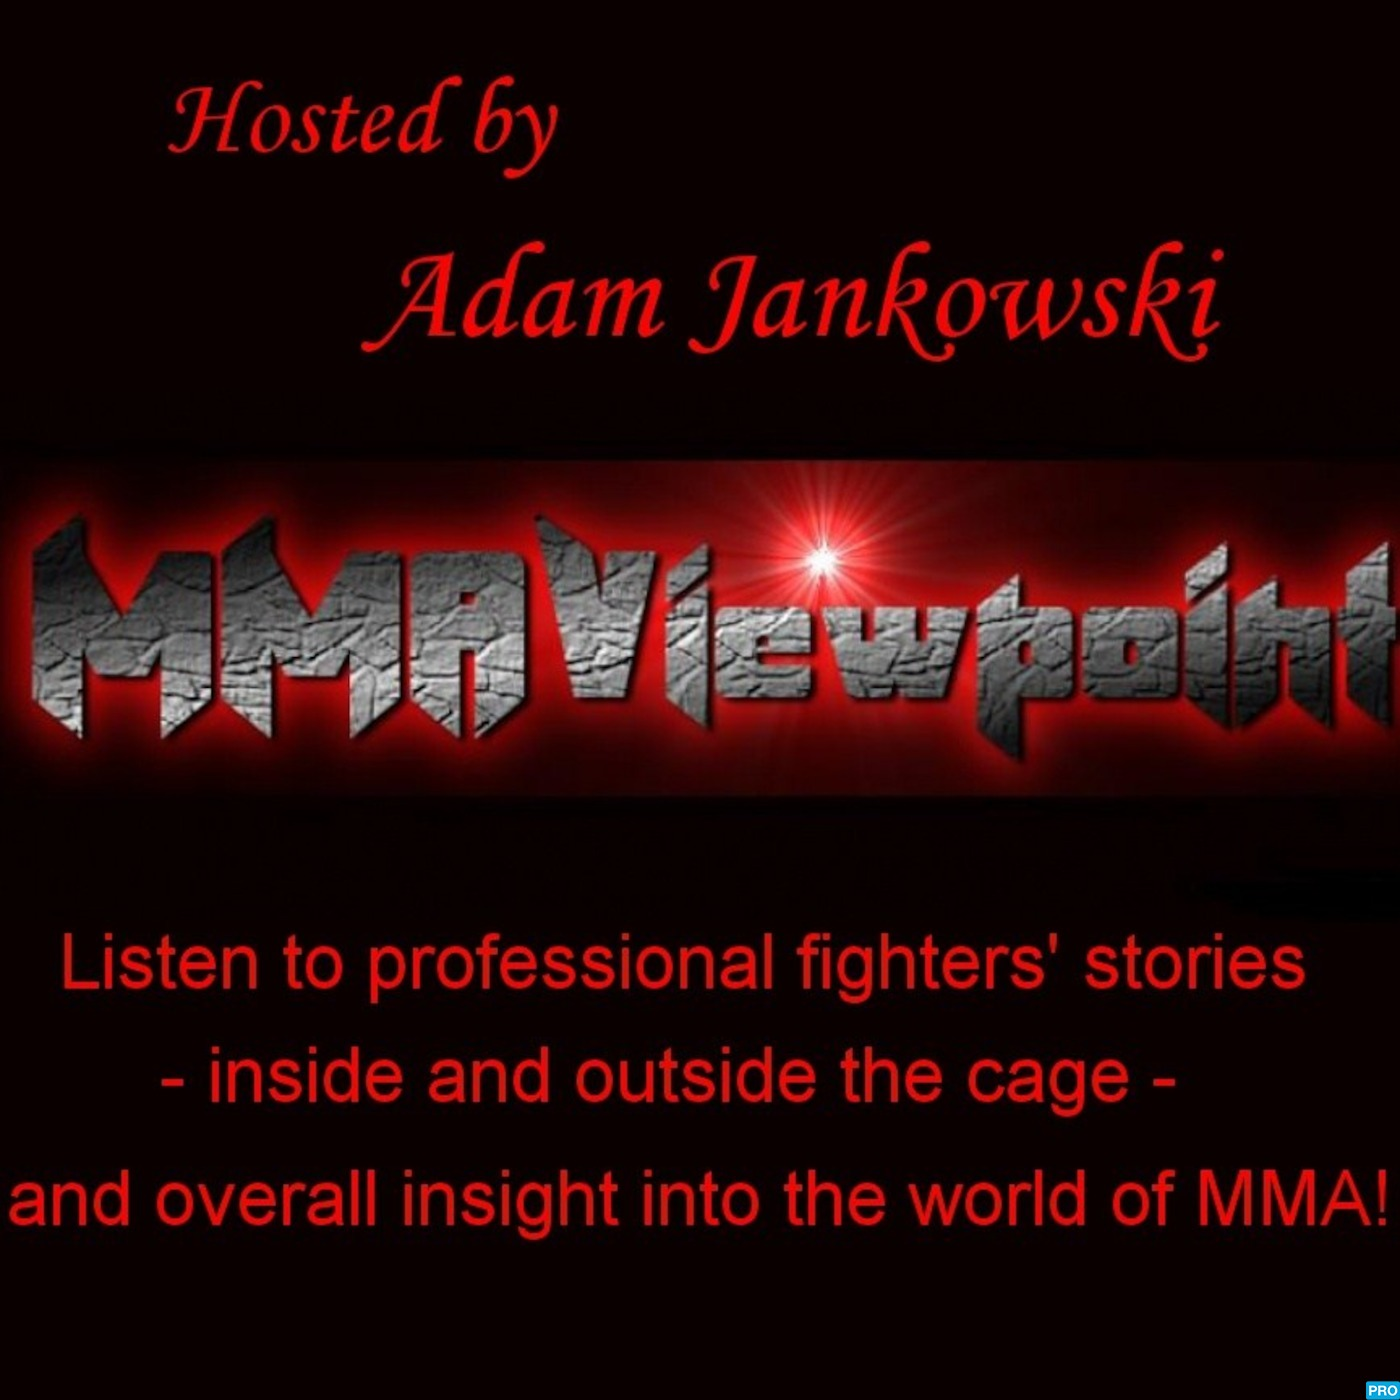 MMA Viewpoint